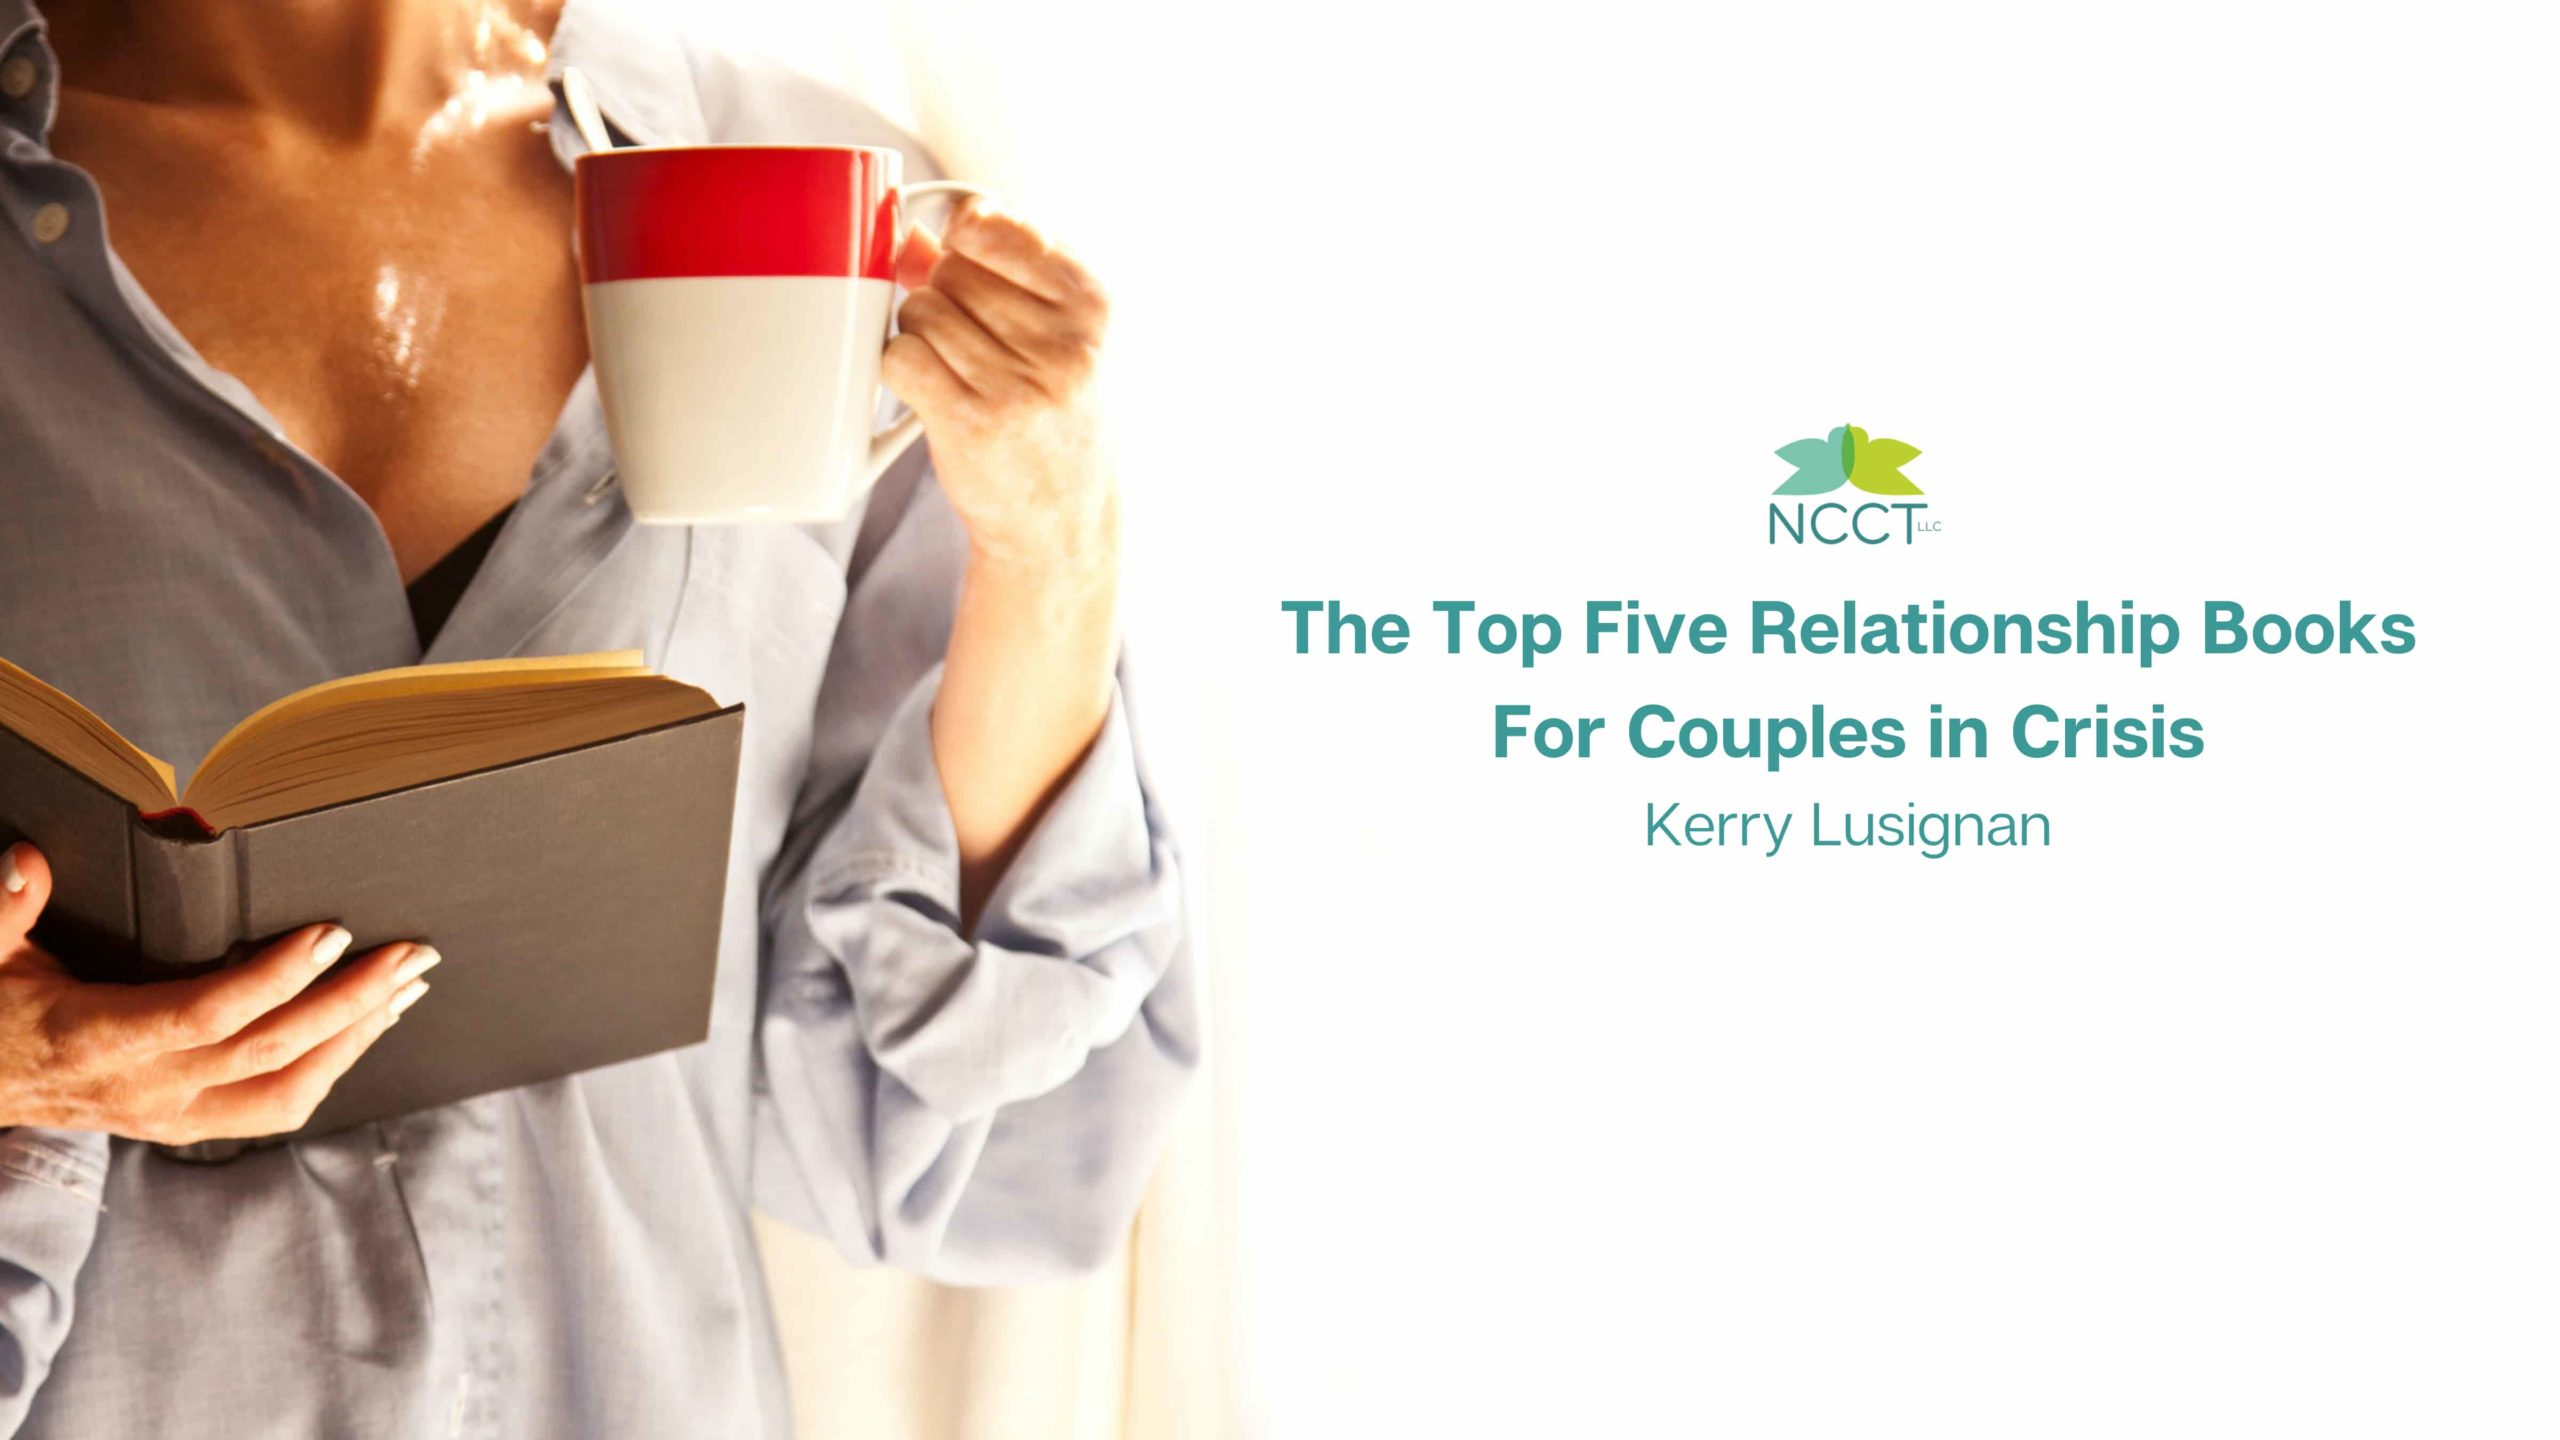 The Top Five Relationship Books For Couples in Crisis Kerry Lusignan